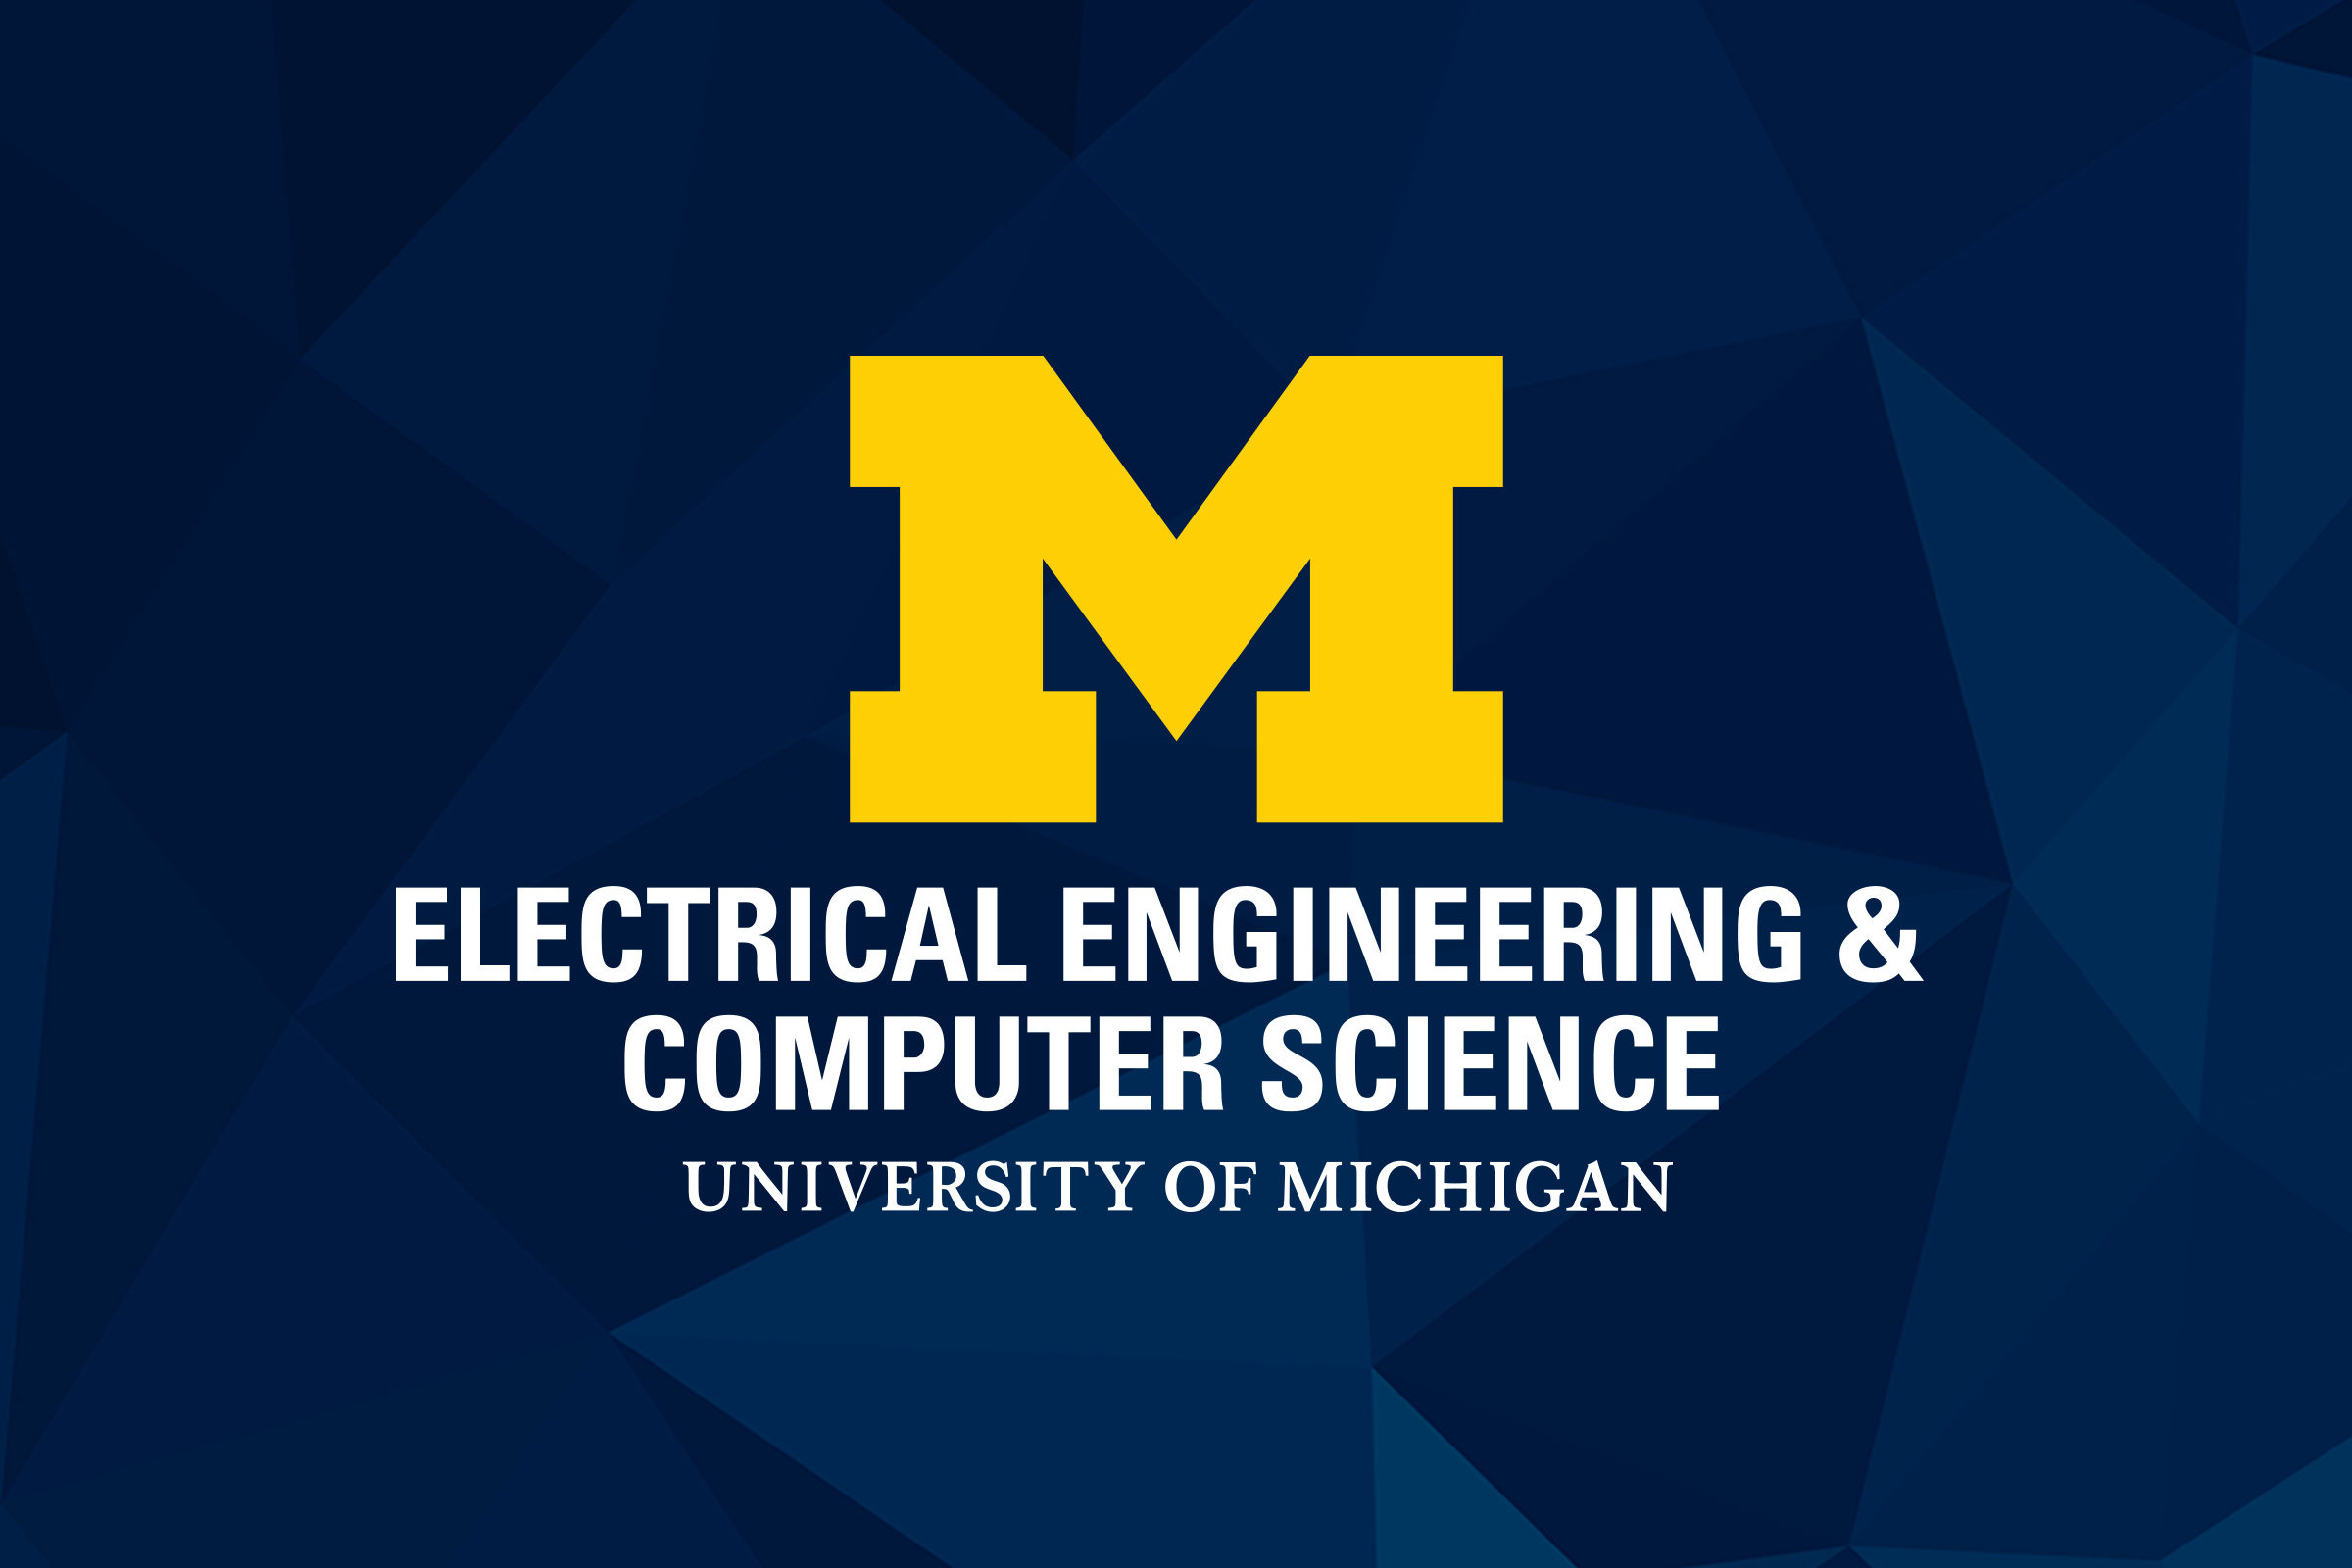 Electrical Engineering & Computer Science logo